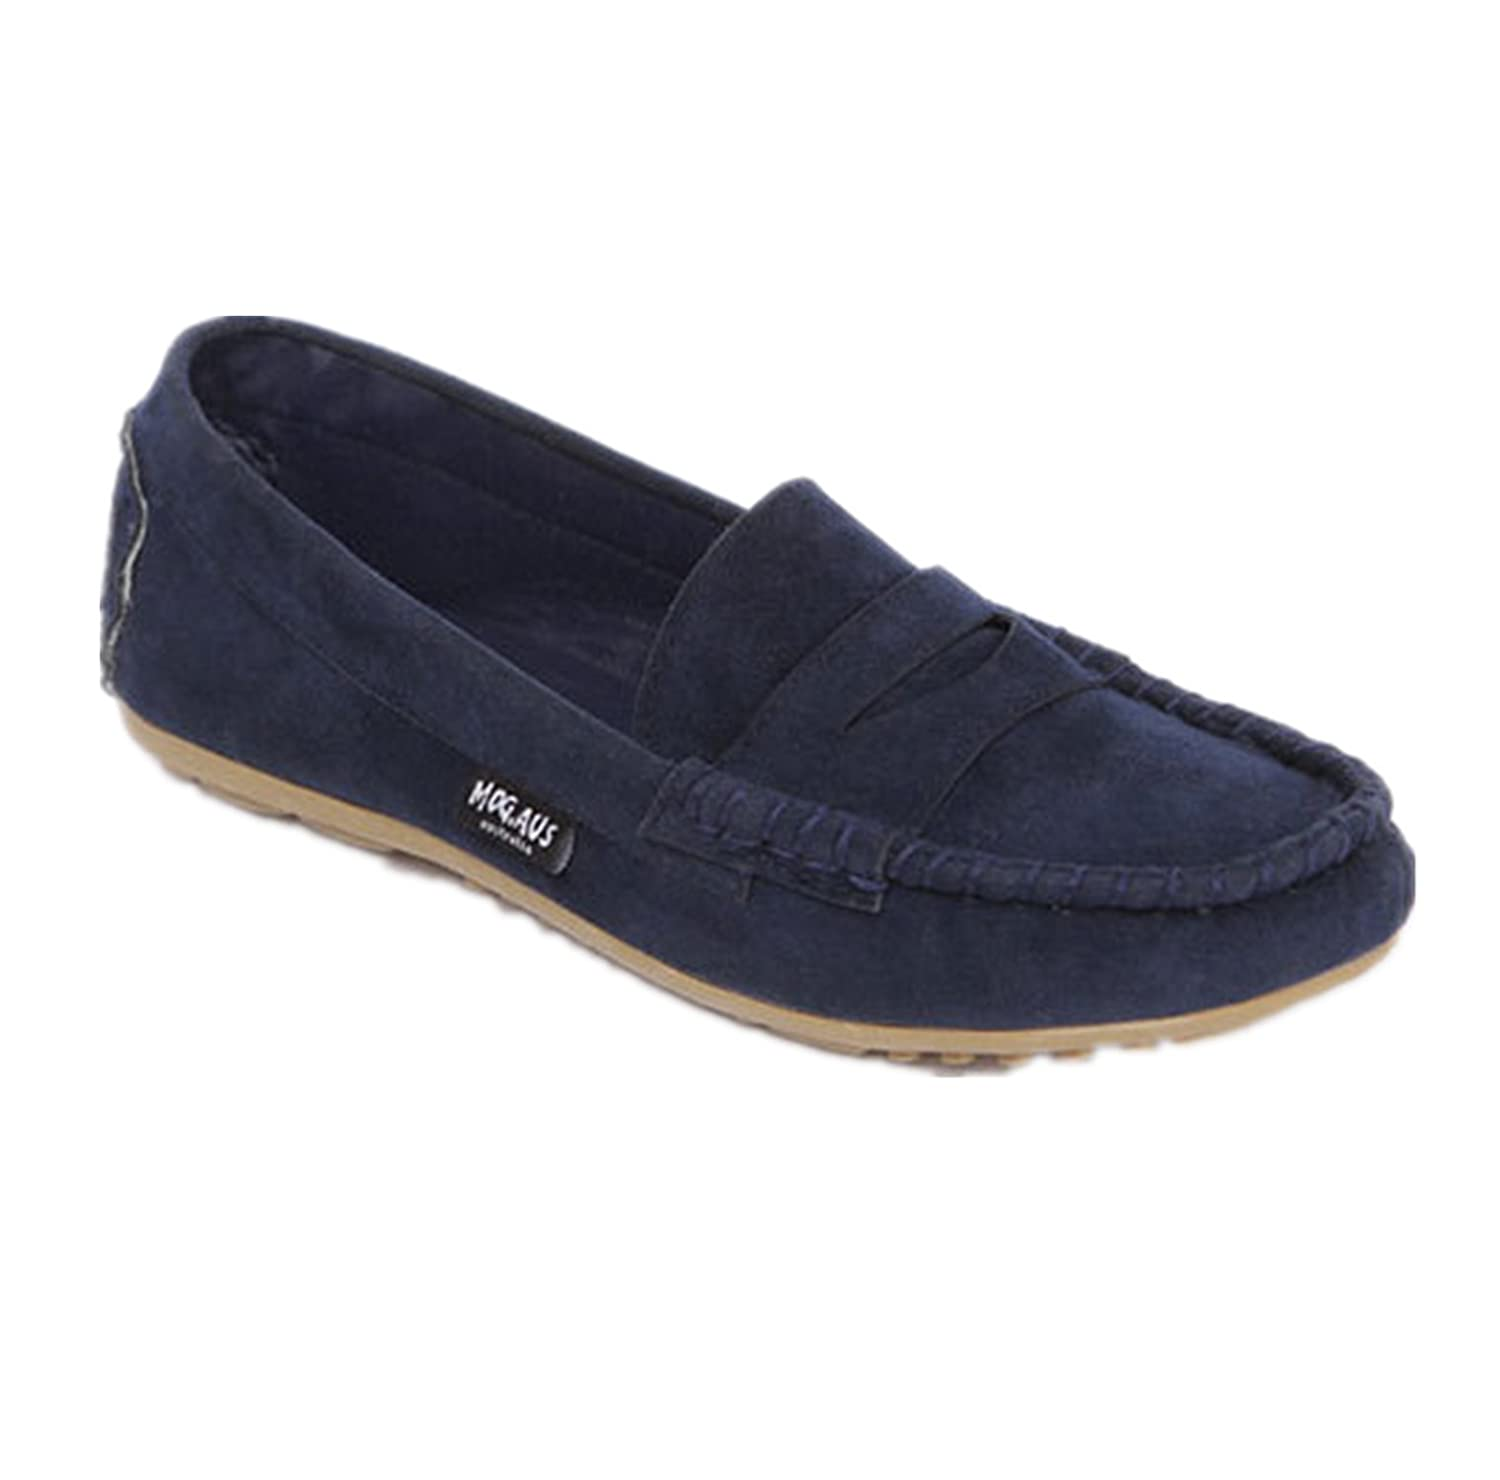 Yougao Women's Slip-On Loafer Flat Shoes